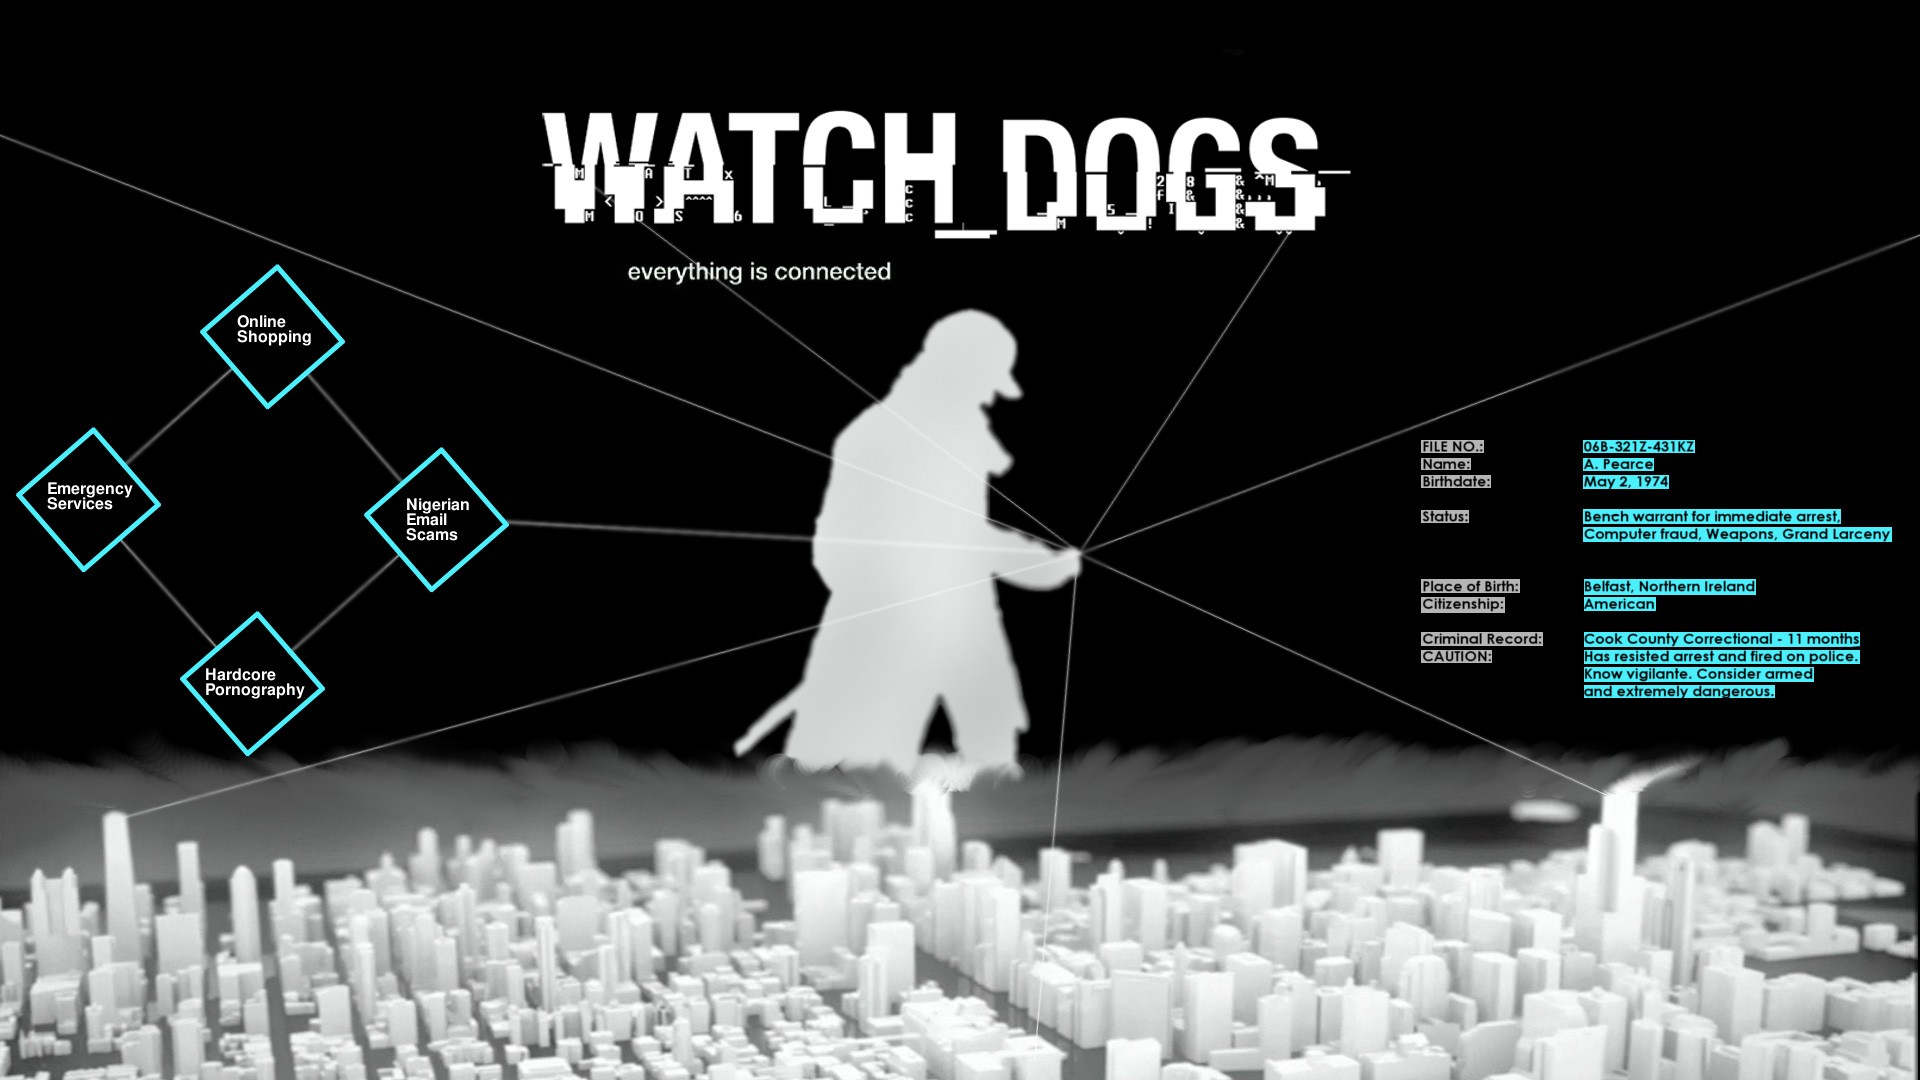 video games Chicago Ubisoft Watch Dogs phone